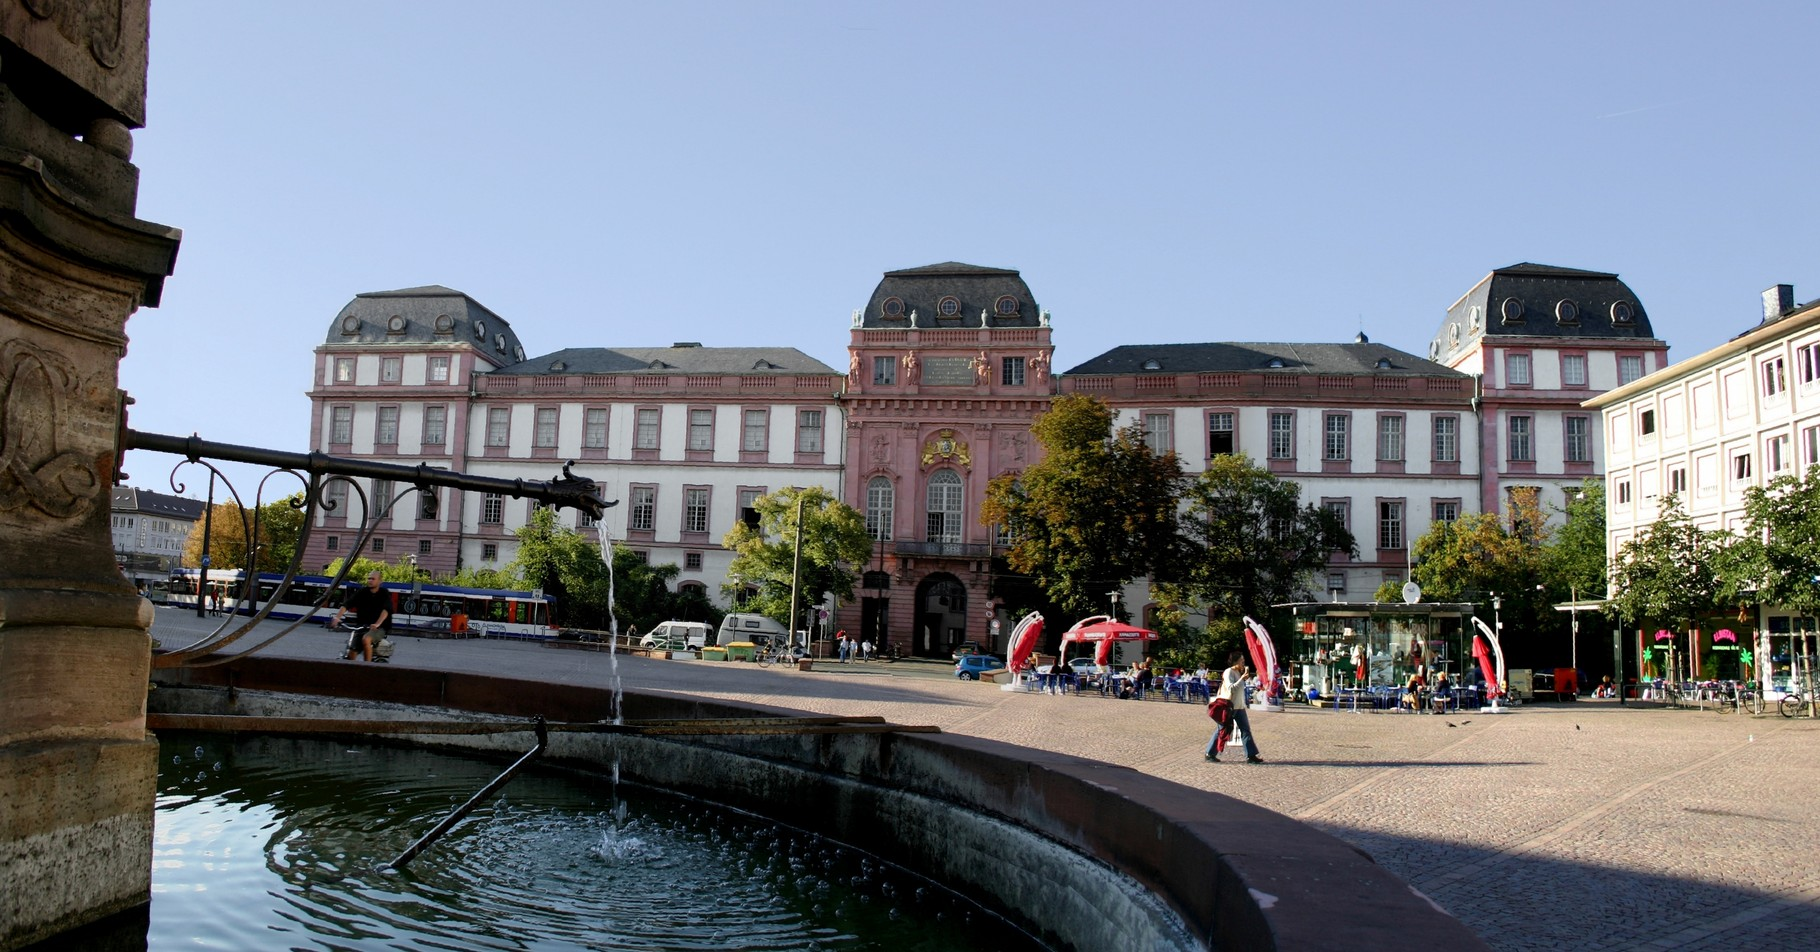 Palace and market place